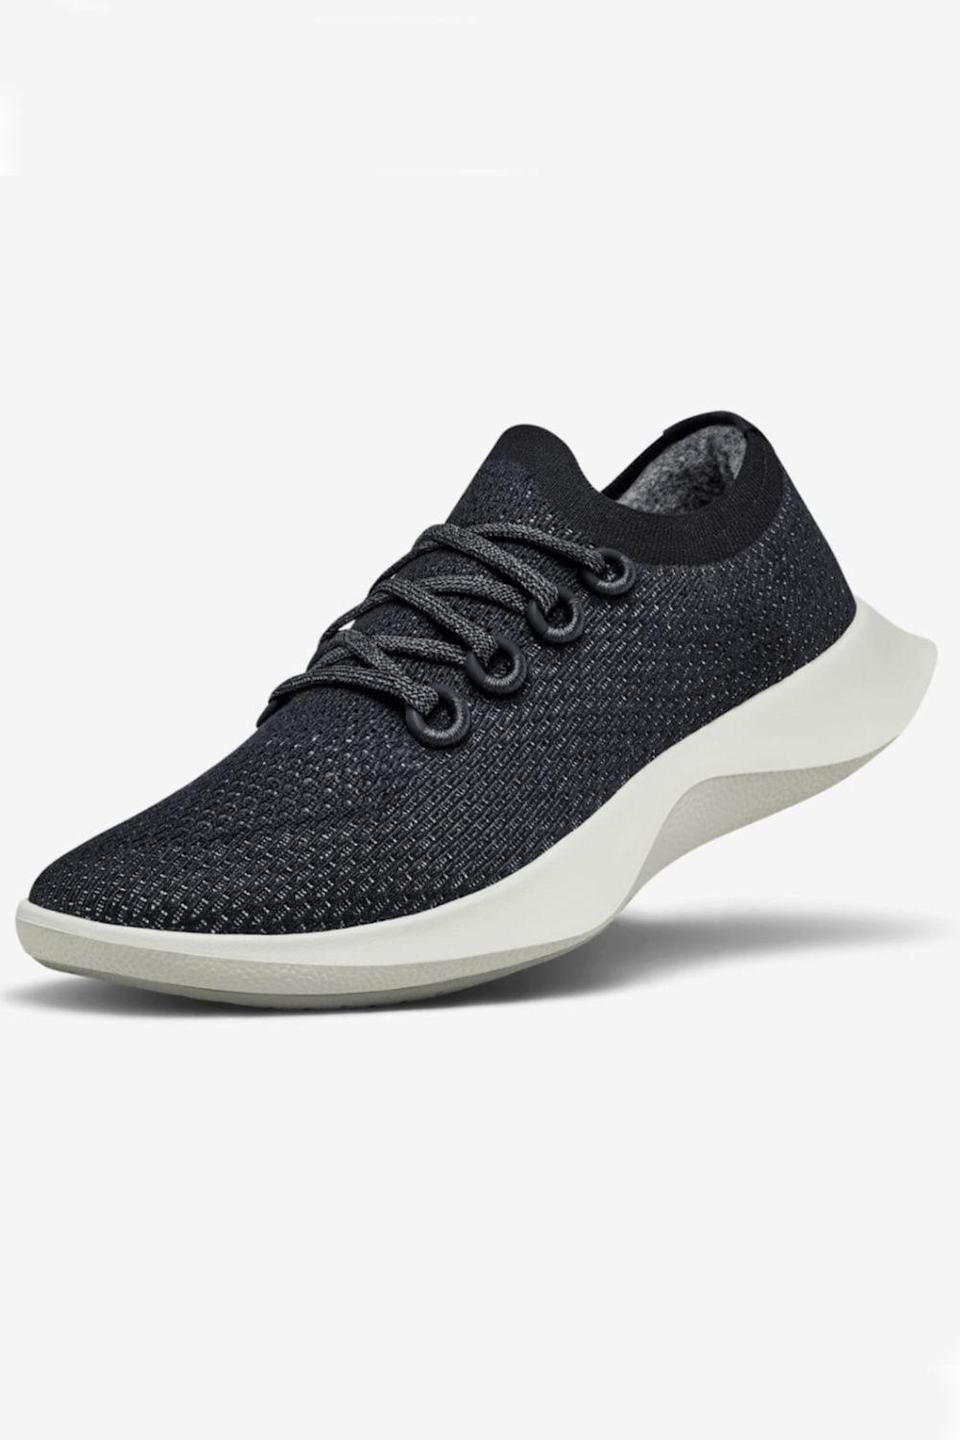 """<p><strong>Allbirds</strong></p><p>allbirds.com</p><p><strong>$125.00</strong></p><p><a href=""""https://go.redirectingat.com?id=74968X1596630&url=https%3A%2F%2Fwww.allbirds.com%2Fproducts%2Fmens-tree-dashers&sref=https%3A%2F%2Fwww.cosmopolitan.com%2Fstyle-beauty%2Ffashion%2Fg32619153%2Fgifts-for-man-who-has-everything%2F"""" rel=""""nofollow noopener"""" target=""""_blank"""" data-ylk=""""slk:Shop Now"""" class=""""link rapid-noclick-resp"""">Shop Now</a></p><p>He might think he has enough shoes, but does he have a pair that minimizes odor <em>and</em> is machine washable, like this one? Yeah, I didn't think so. </p>"""